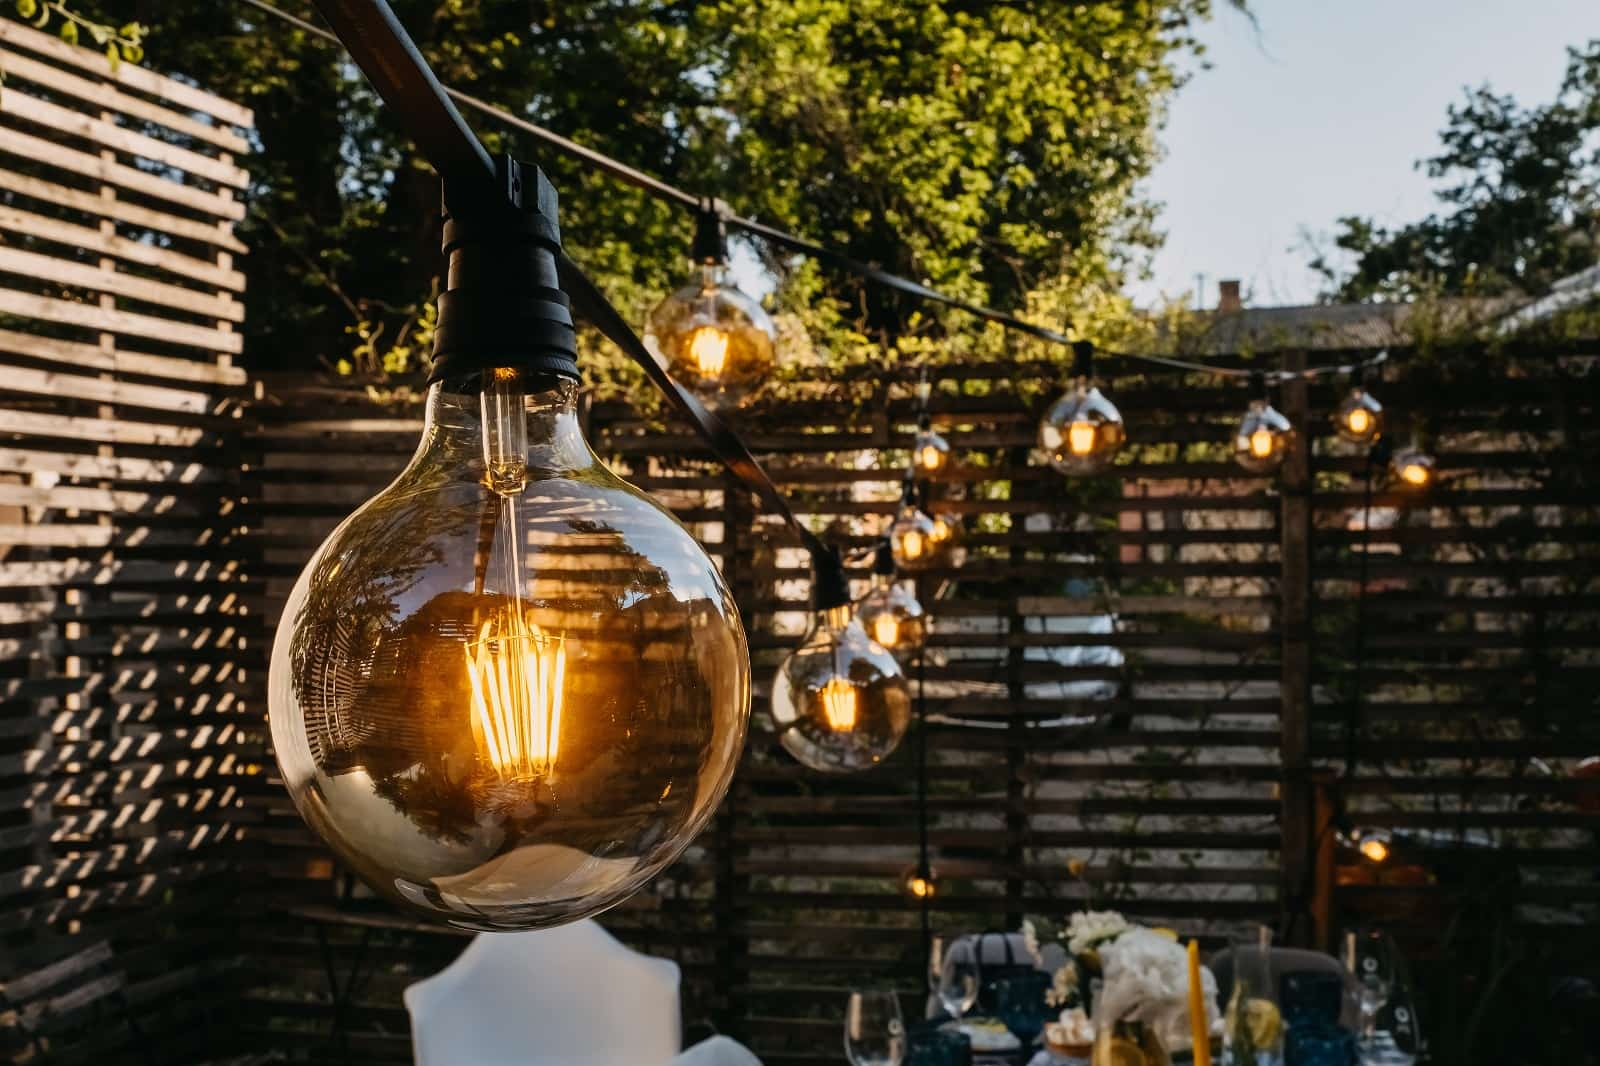 15 Outside Lighting Ideas To Brighten Your Home. Black electric cord with incadescent light bulbs in steampunk style over the patio zone at the backyard